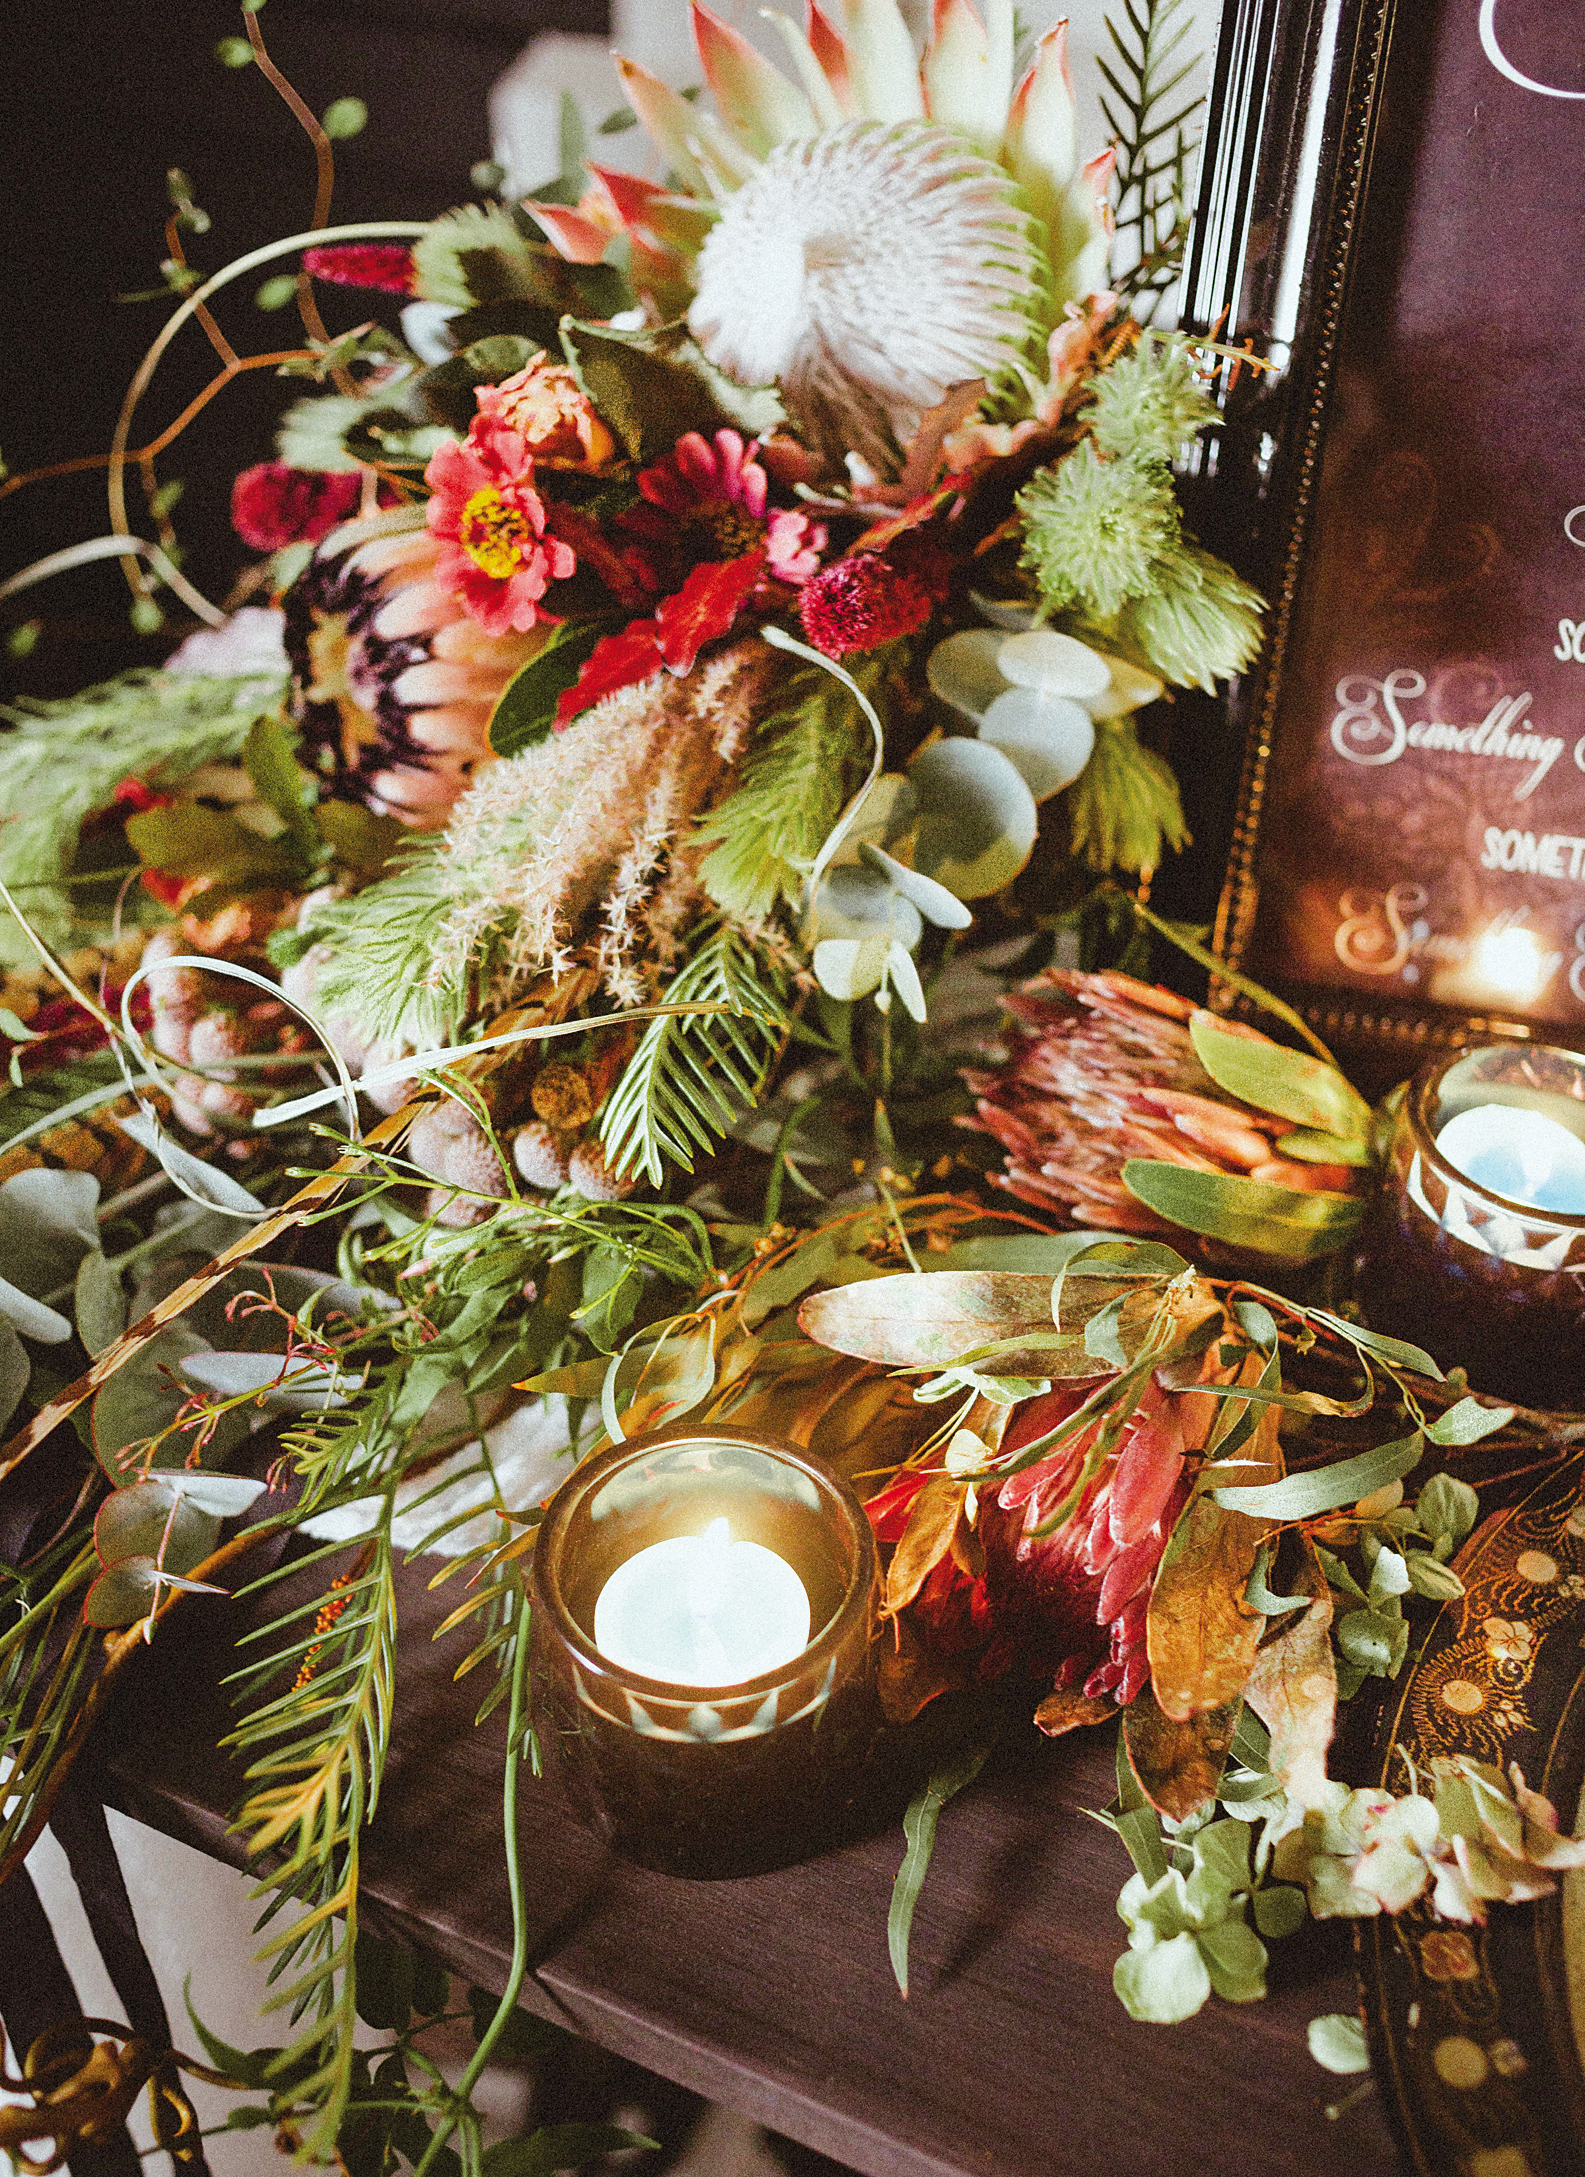 Bride & Groom Mag AUTUMN STYLED SHOOT Event Boutique 12.jpg